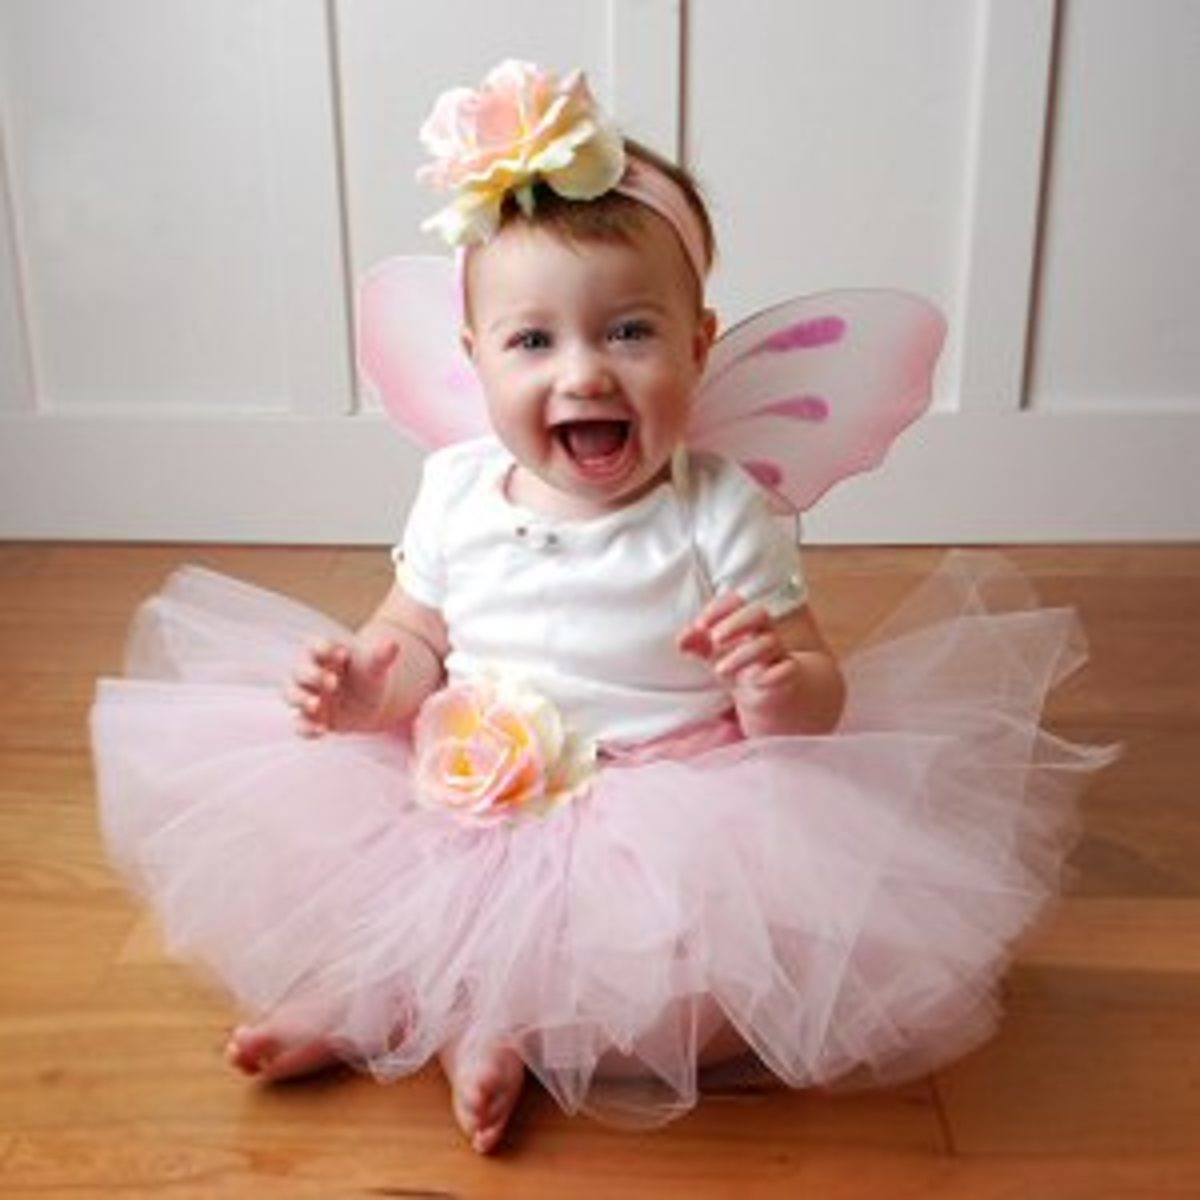 Fairy Princess dance Costumes, Baby, Toddlers, Child Flower Fairies, Flower Girl Dresses, Tutu's, Womens Fairy dresses, Fairy Wings, Magic Wands, Ruby Slippers, Garlands, Ashland Oregon: The perfect little Baby, Toddler Flower fairy dresses for your Fairy Princess dress .